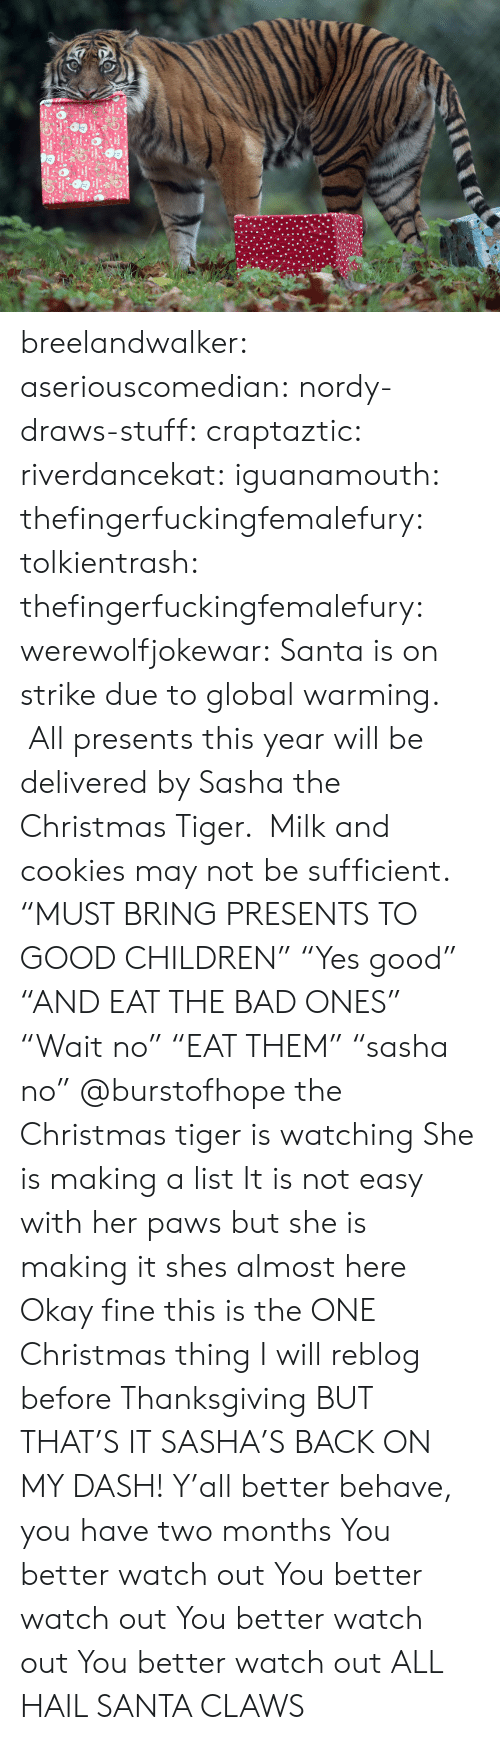 "dash: breelandwalker:  aseriouscomedian:  nordy-draws-stuff:   craptaztic:  riverdancekat:  iguanamouth:  thefingerfuckingfemalefury:  tolkientrash:  thefingerfuckingfemalefury:  werewolfjokewar:  Santa is on strike due to global warming.  All presents this year will be delivered by Sasha the Christmas Tiger.  Milk and cookies may not be sufficient.  ""MUST BRING PRESENTS TO GOOD CHILDREN"" ""Yes good"" ""AND EAT THE BAD ONES""  ""Wait no"" ""EAT THEM"" ""sasha no""   @burstofhope the Christmas tiger is watching  She is making a list  It is not easy with her paws but she is making it   shes almost here   Okay fine this is the ONE Christmas thing I will reblog before Thanksgiving BUT THAT'S IT  SASHA'S BACK ON MY DASH!  Y'all better behave, you have two months   You better watch out You better watch out You better watch out You better watch out  ALL HAIL SANTA CLAWS"